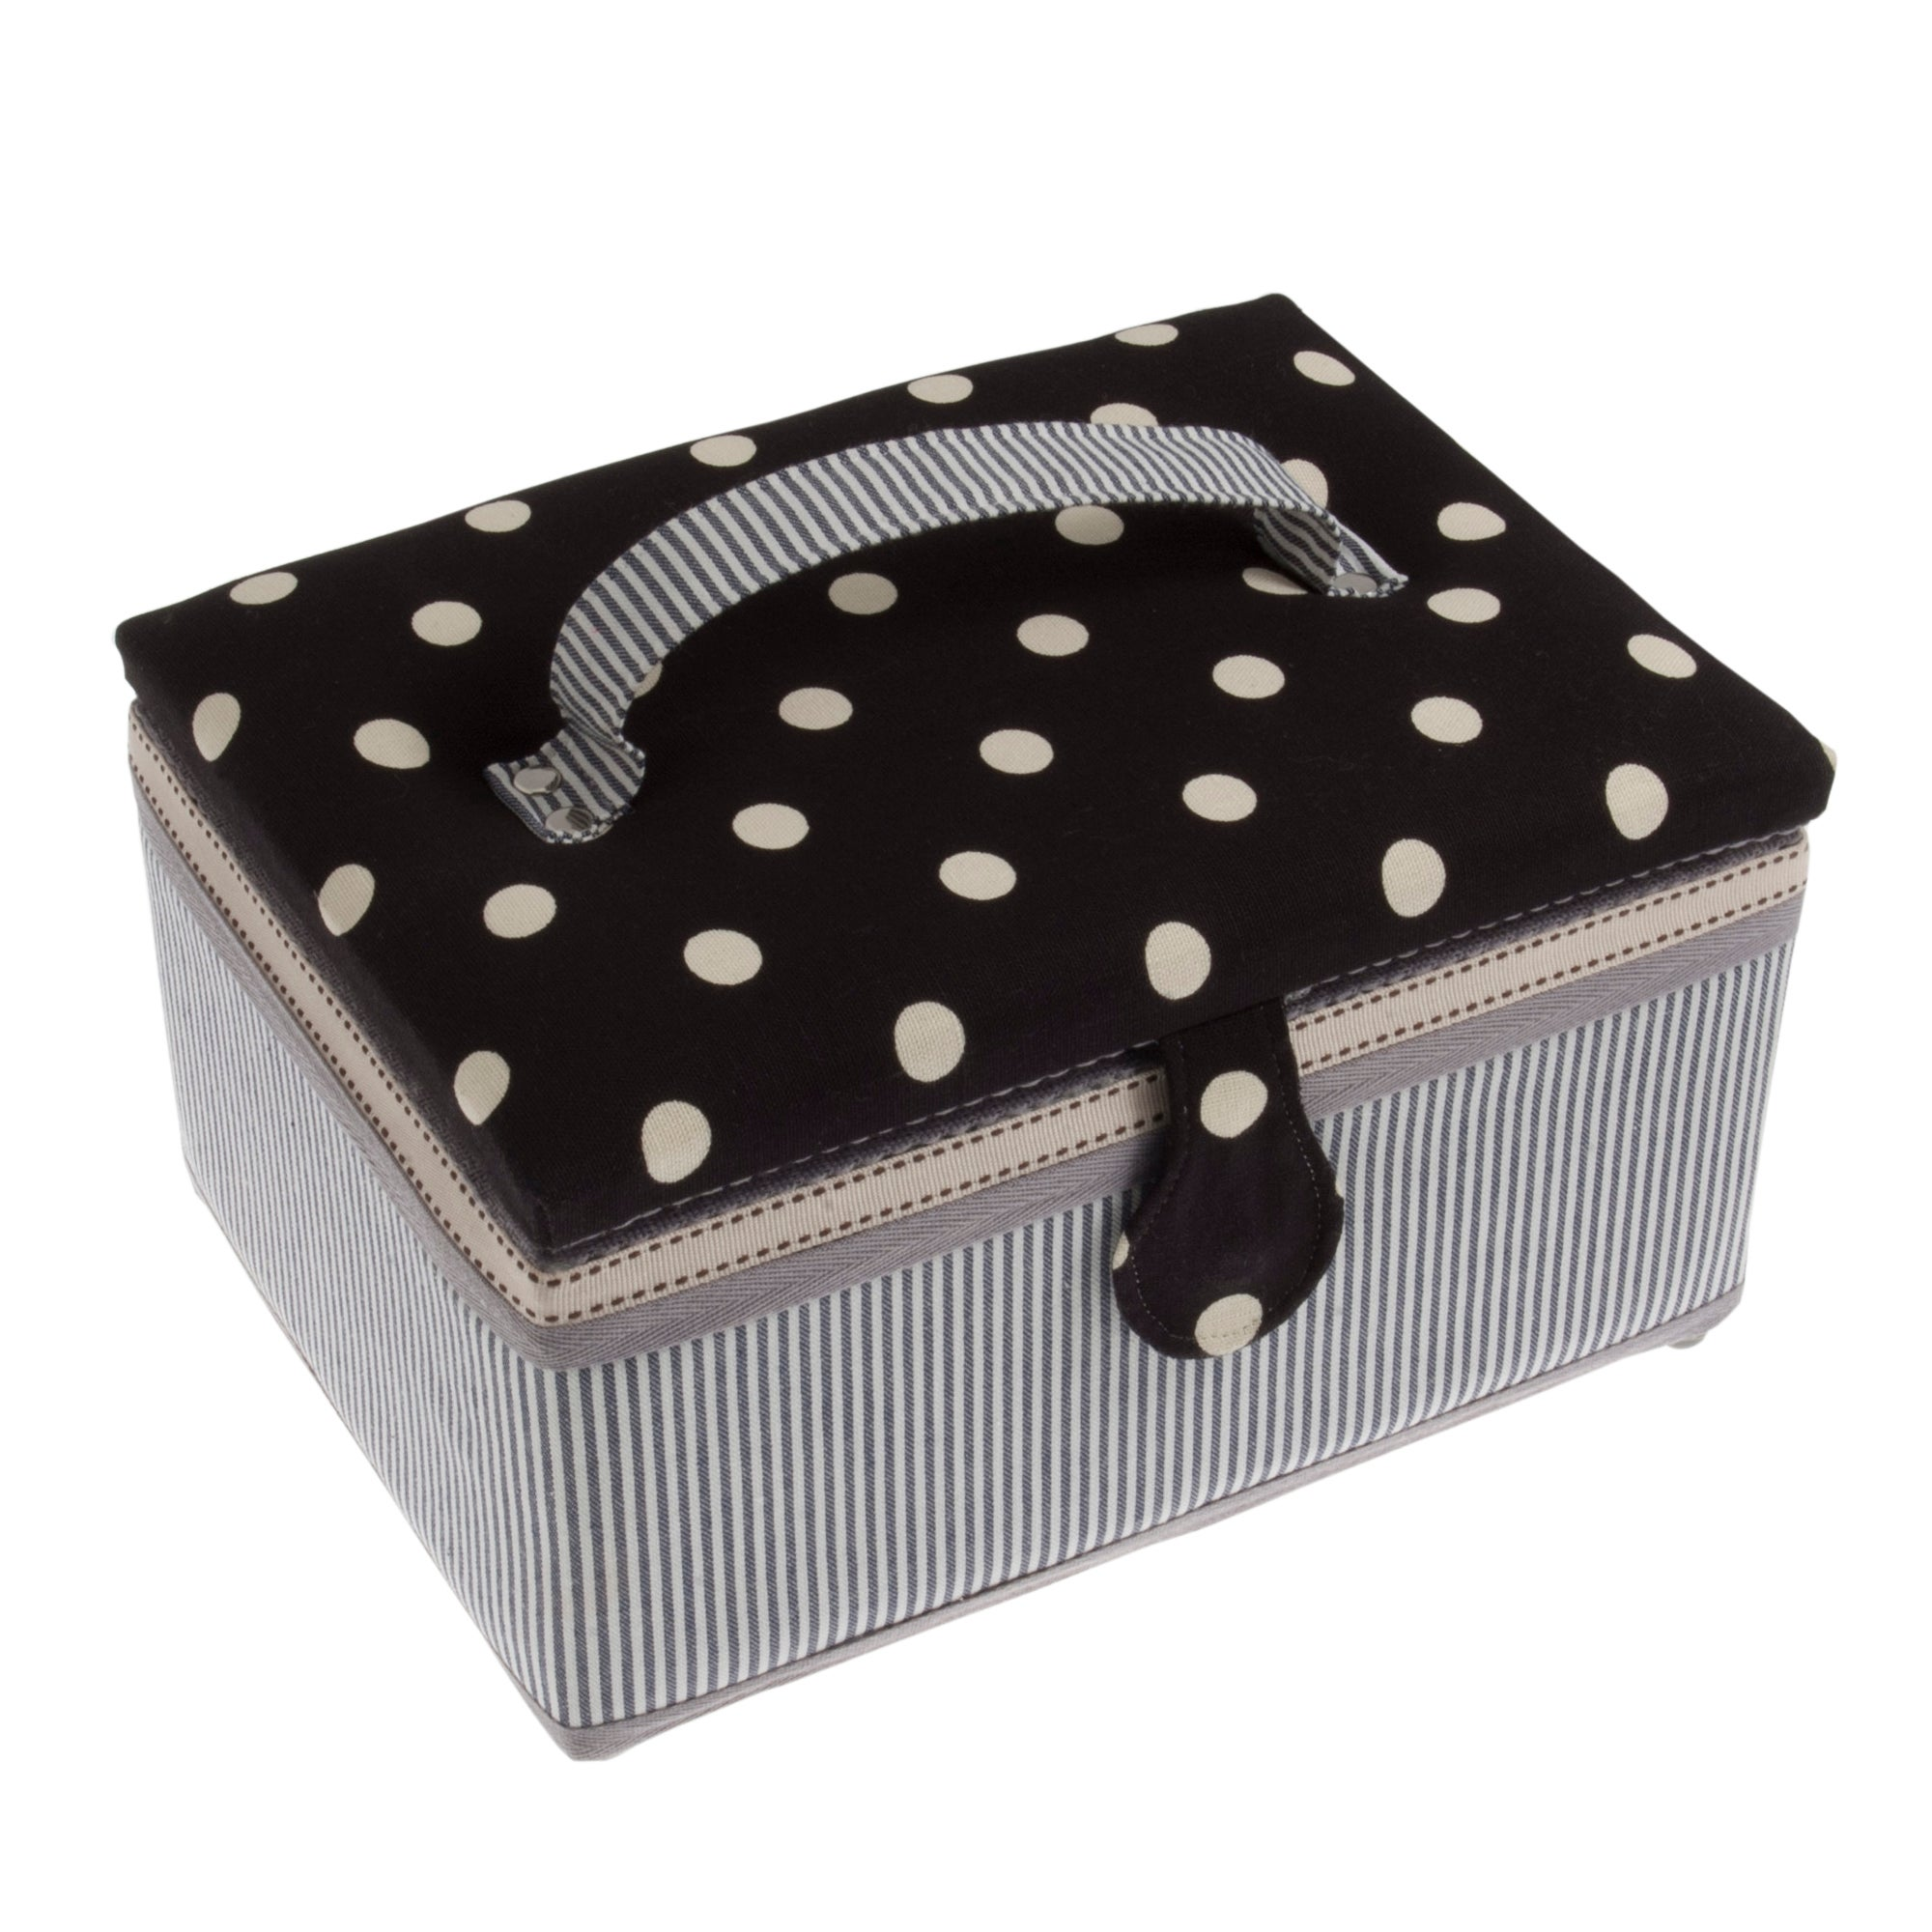 Photo of Dots and stripes sewing box black / white